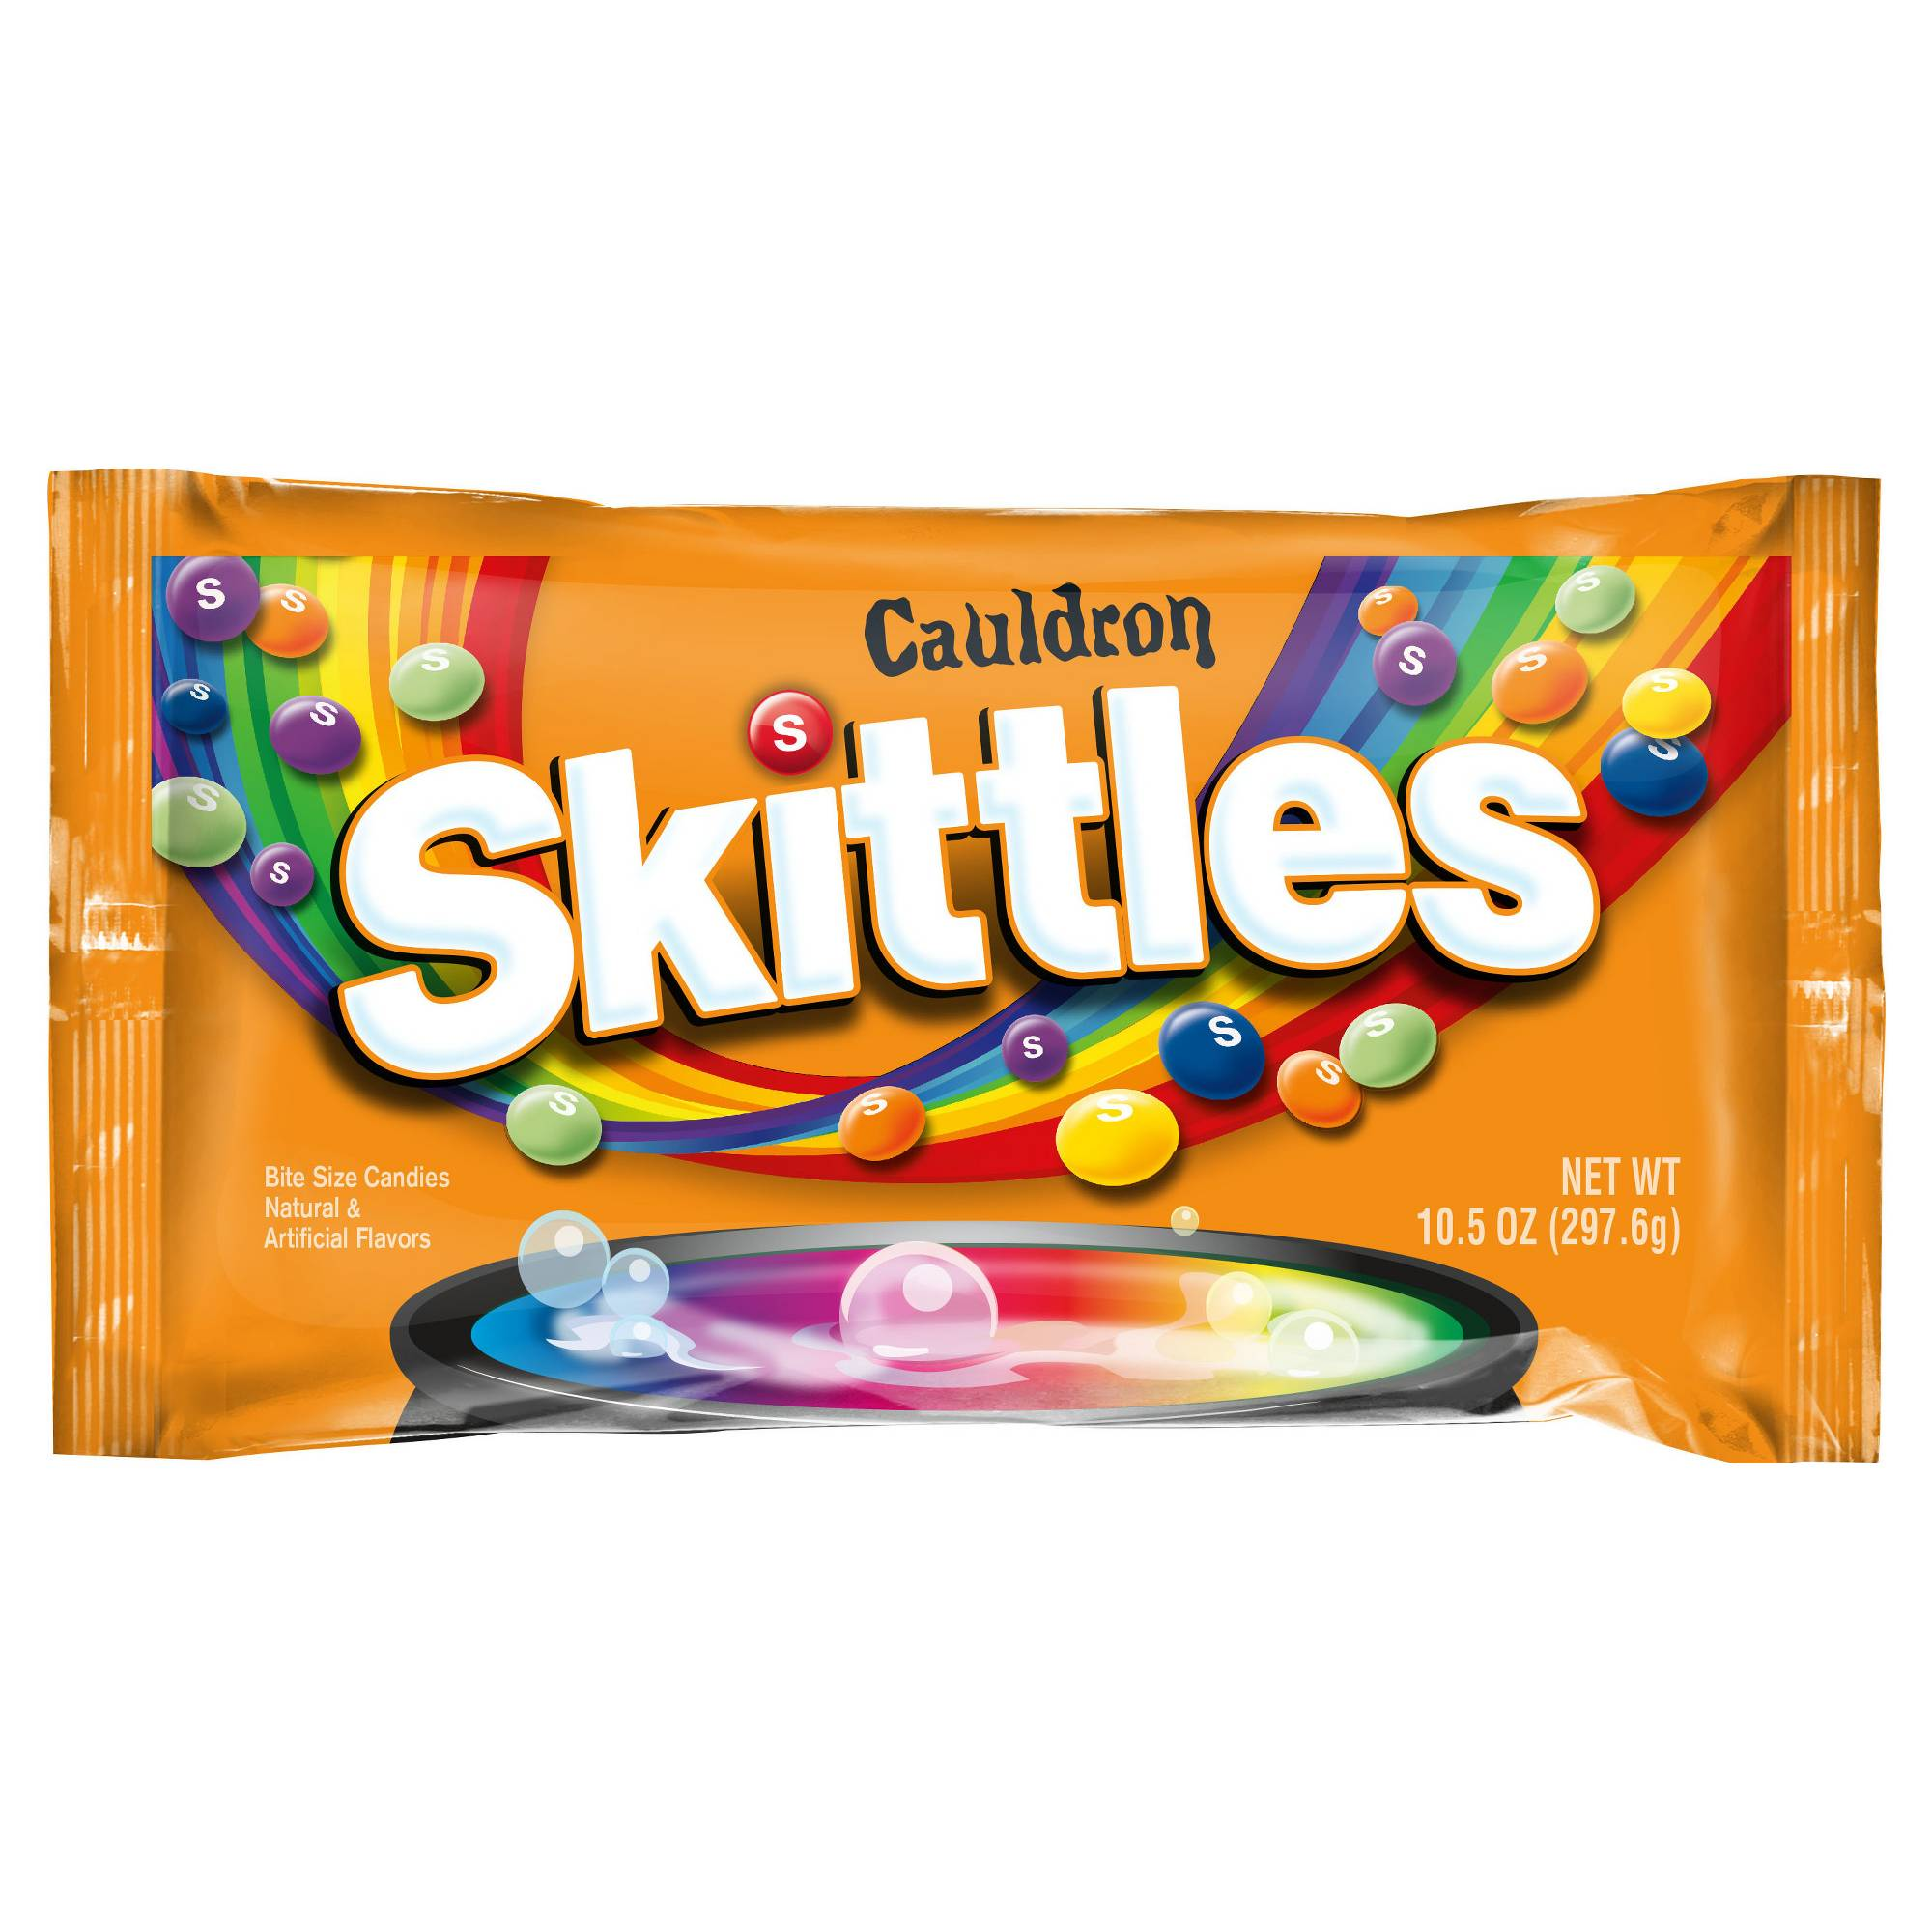 Skittles Cauldron Mix (57.7g)-0